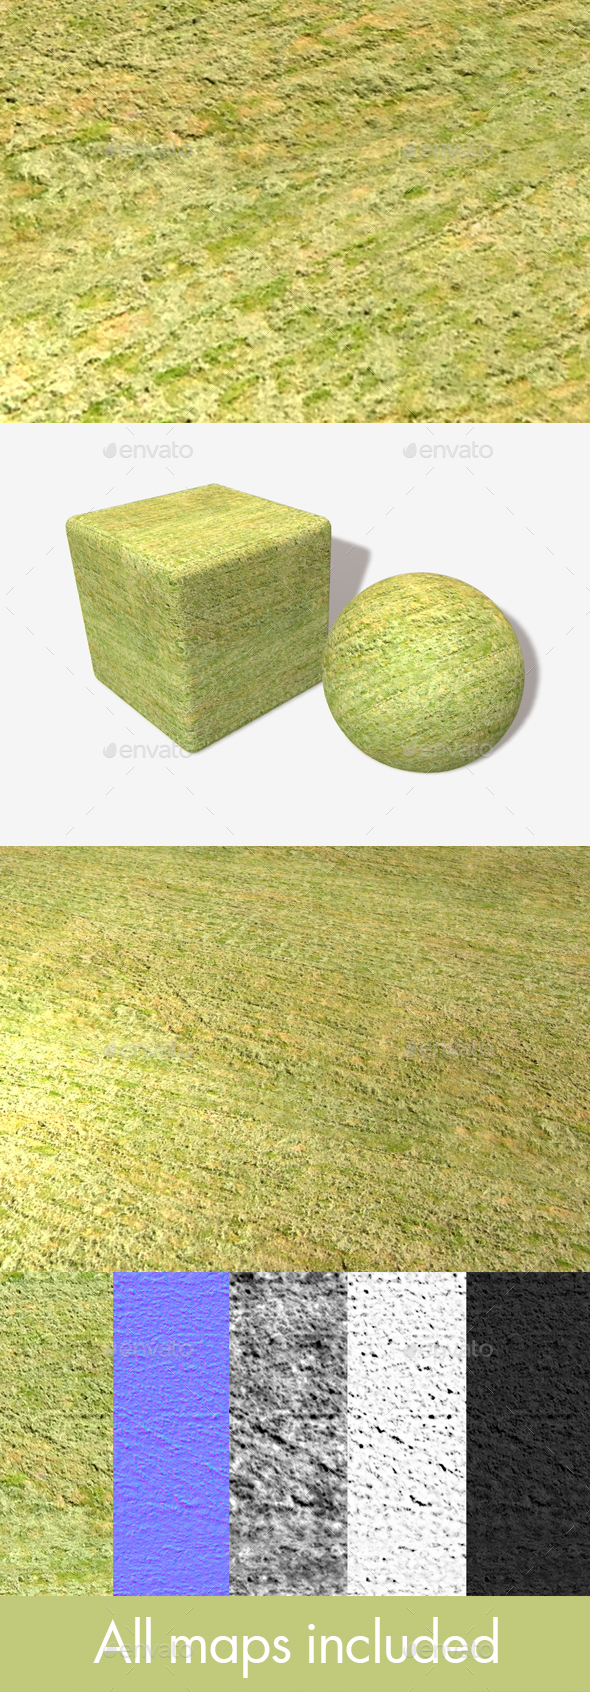 High Angle Cut Grass Field Seamless Texture - 3DOcean Item for Sale